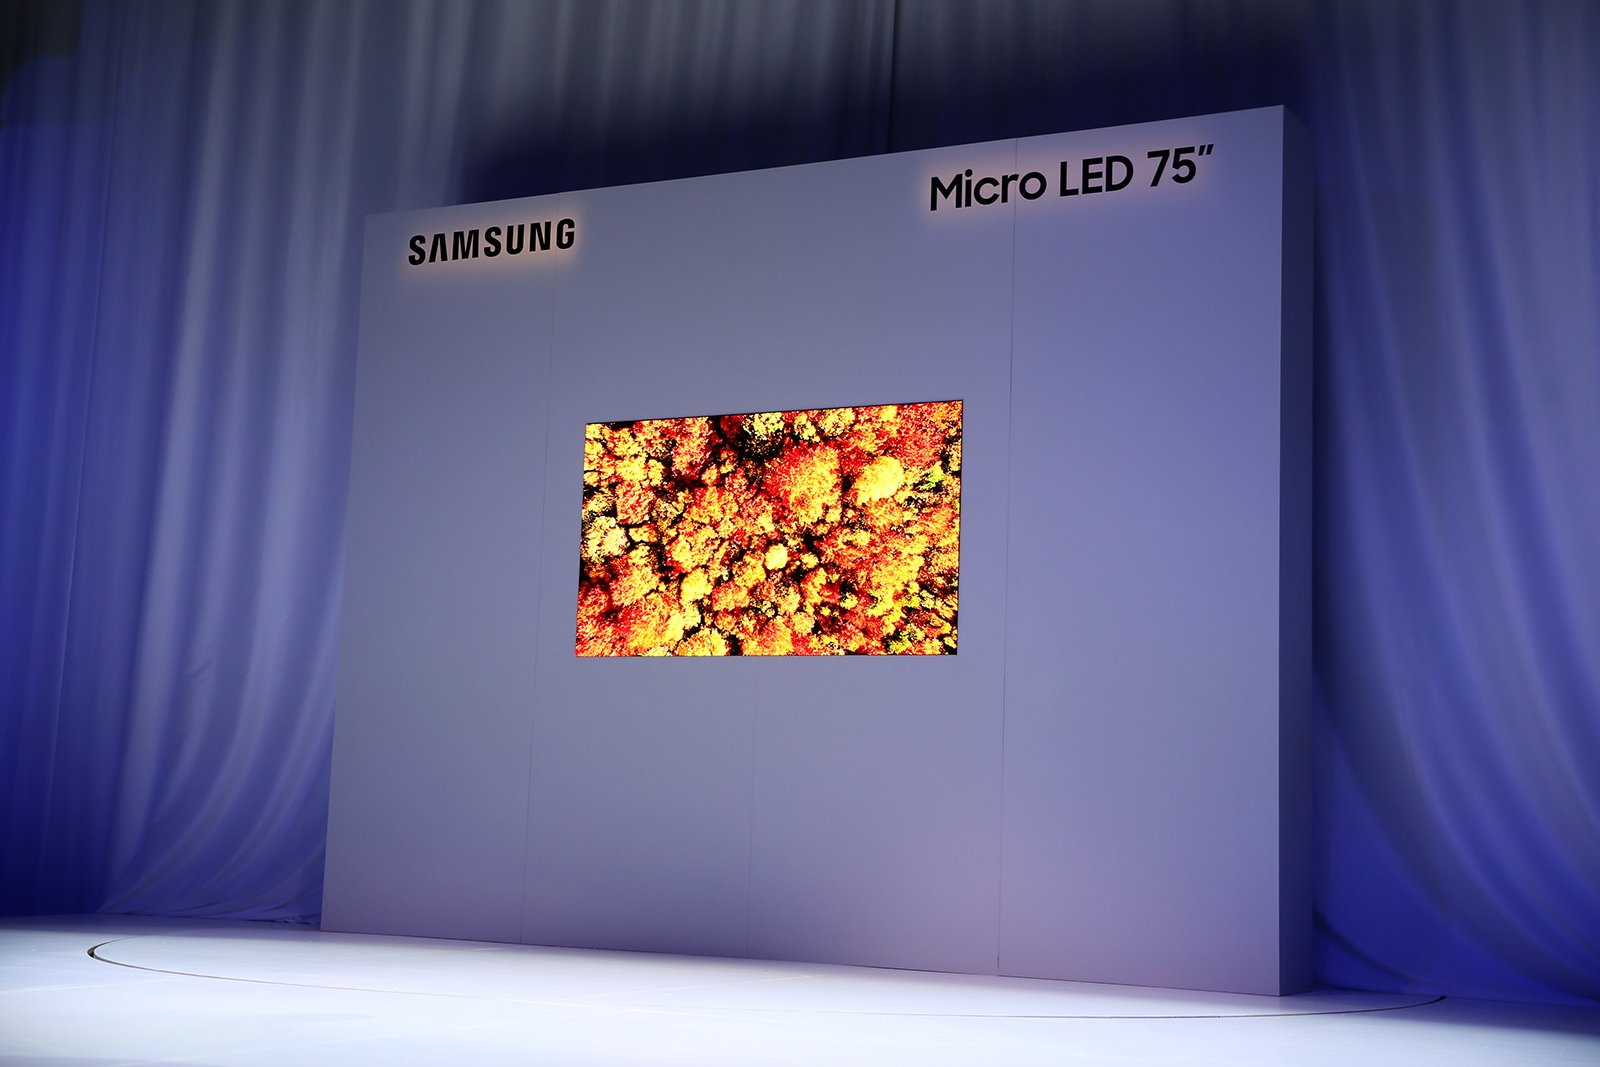 Samsung 75-inch modular micro LED display